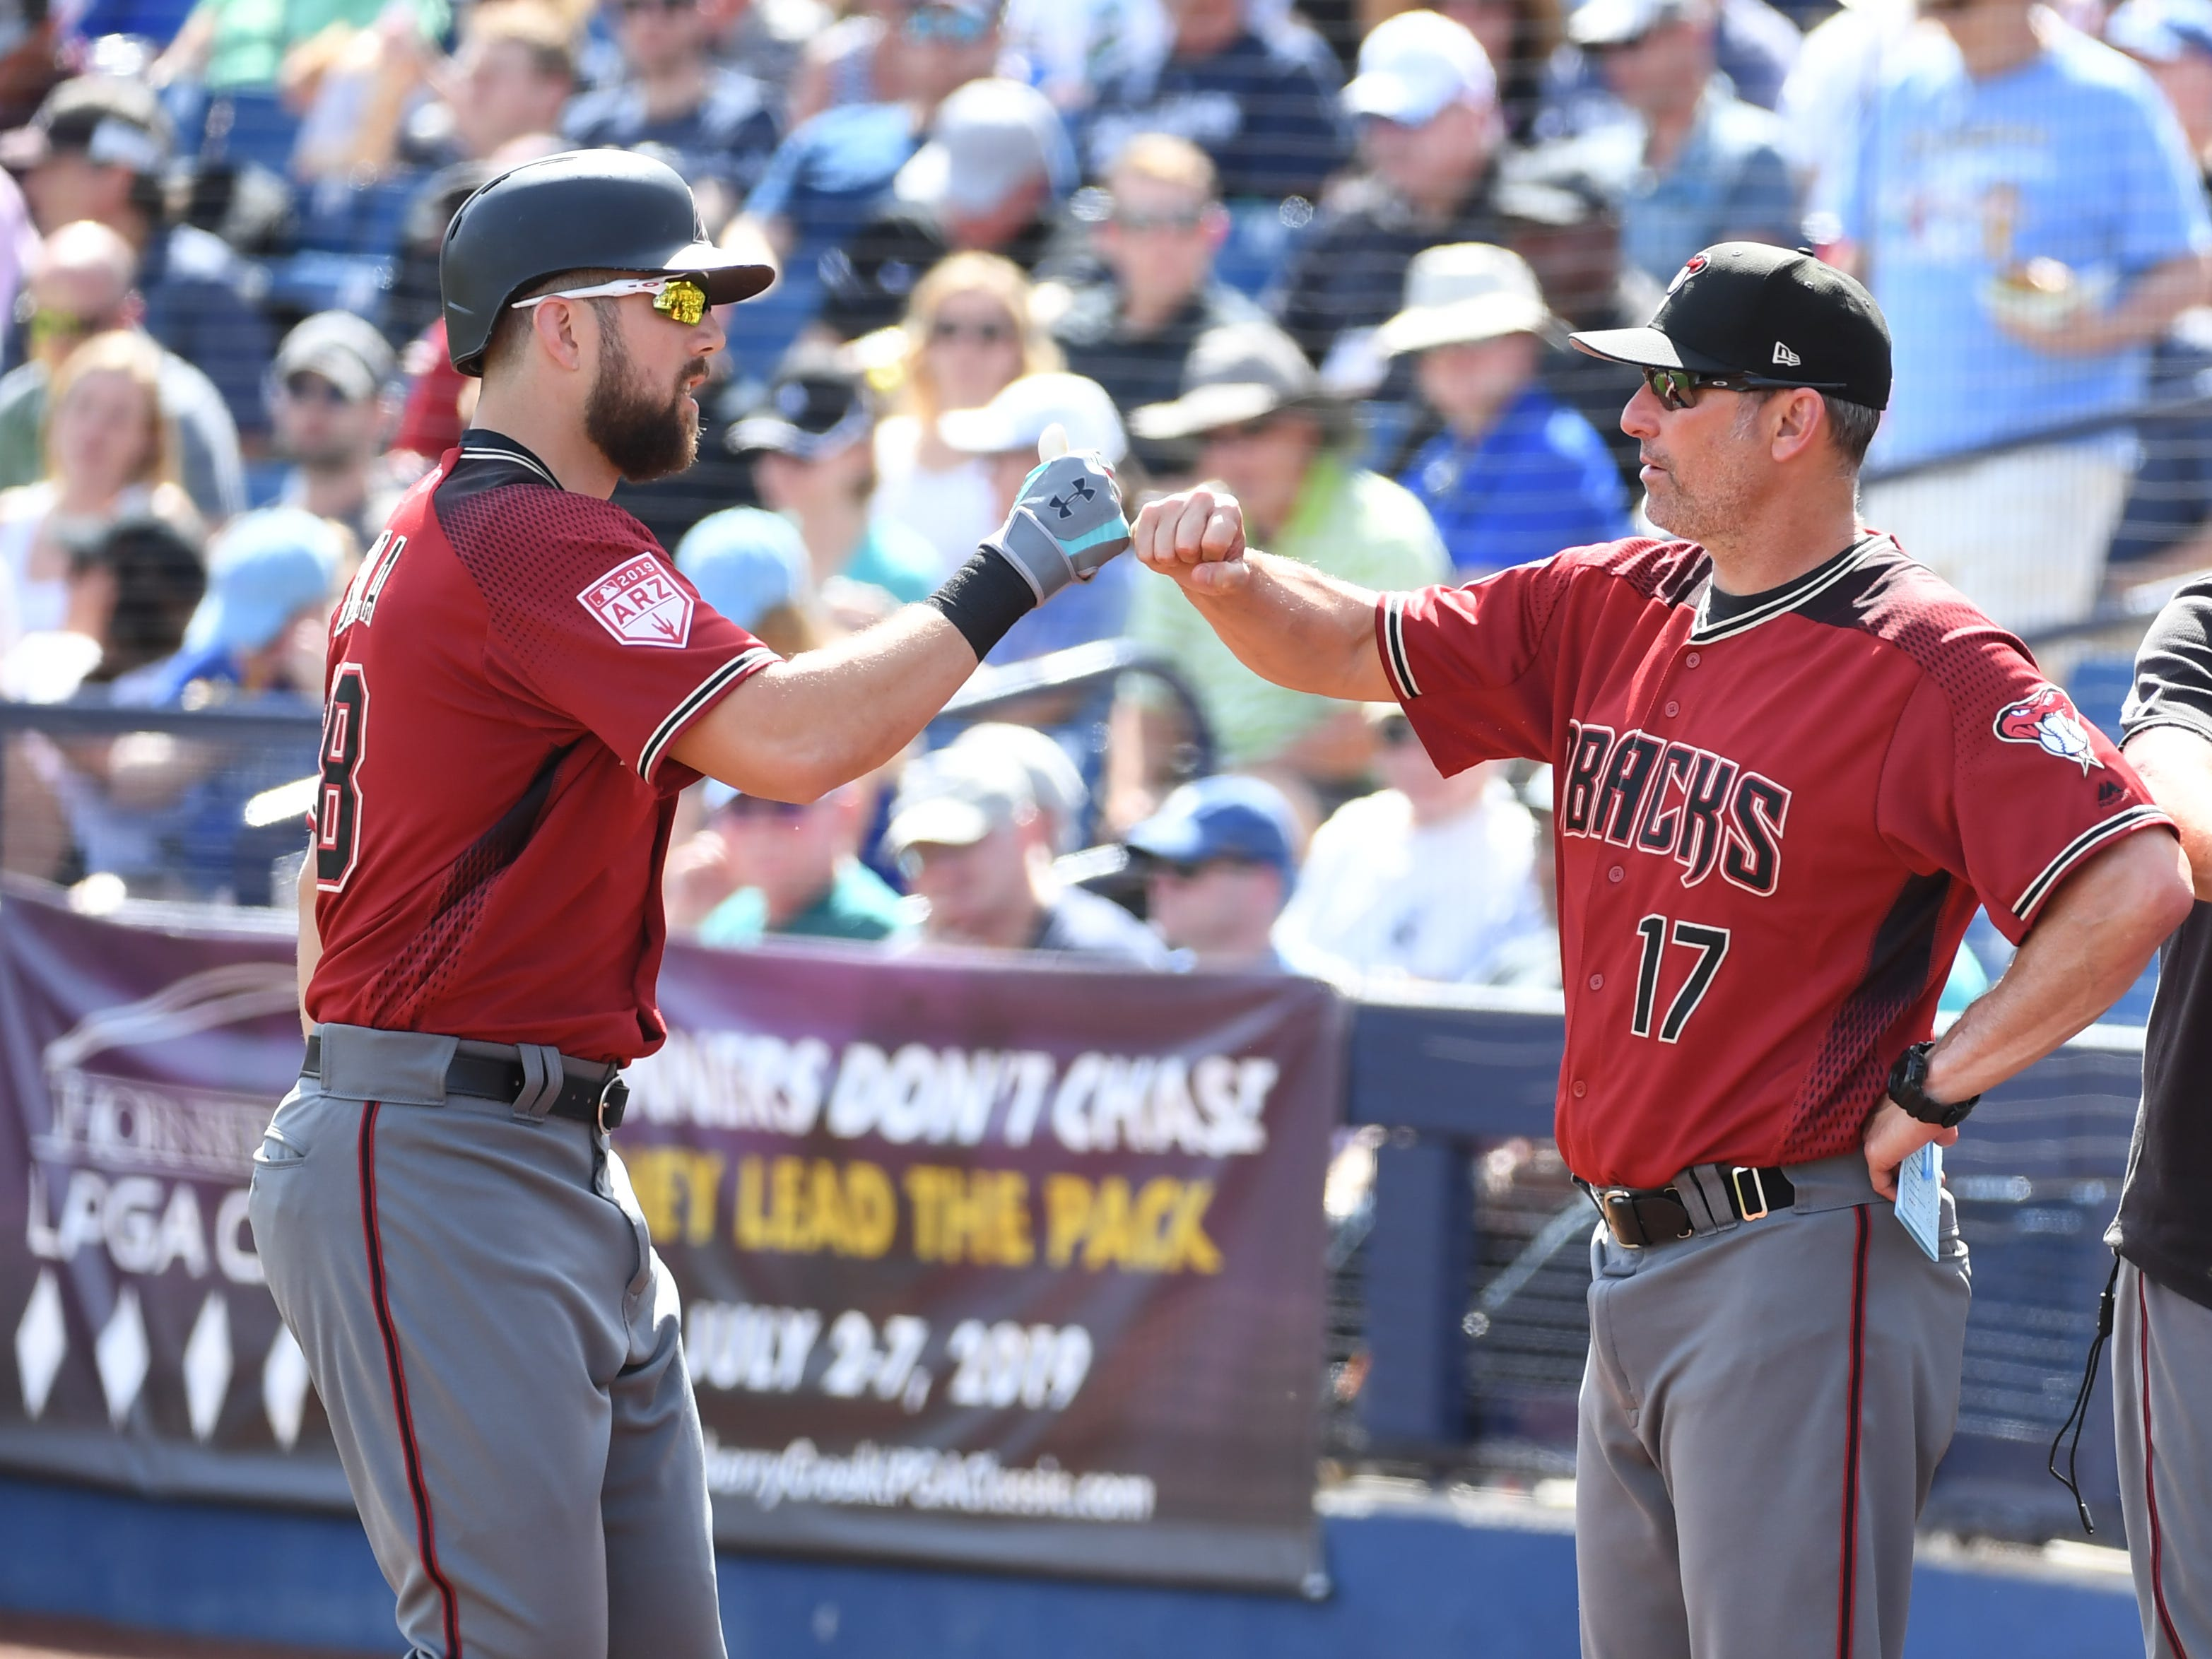 Steven Souza Jr #28 of the Arizona Diamondbacks is congratulated by manager Torey Lovullo #17 after hitting a home run against the Milwaukee Brewers during the second inning of a spring training game at Maryvale Baseball Park on March 06, 2019 in Phoenix, Arizona.